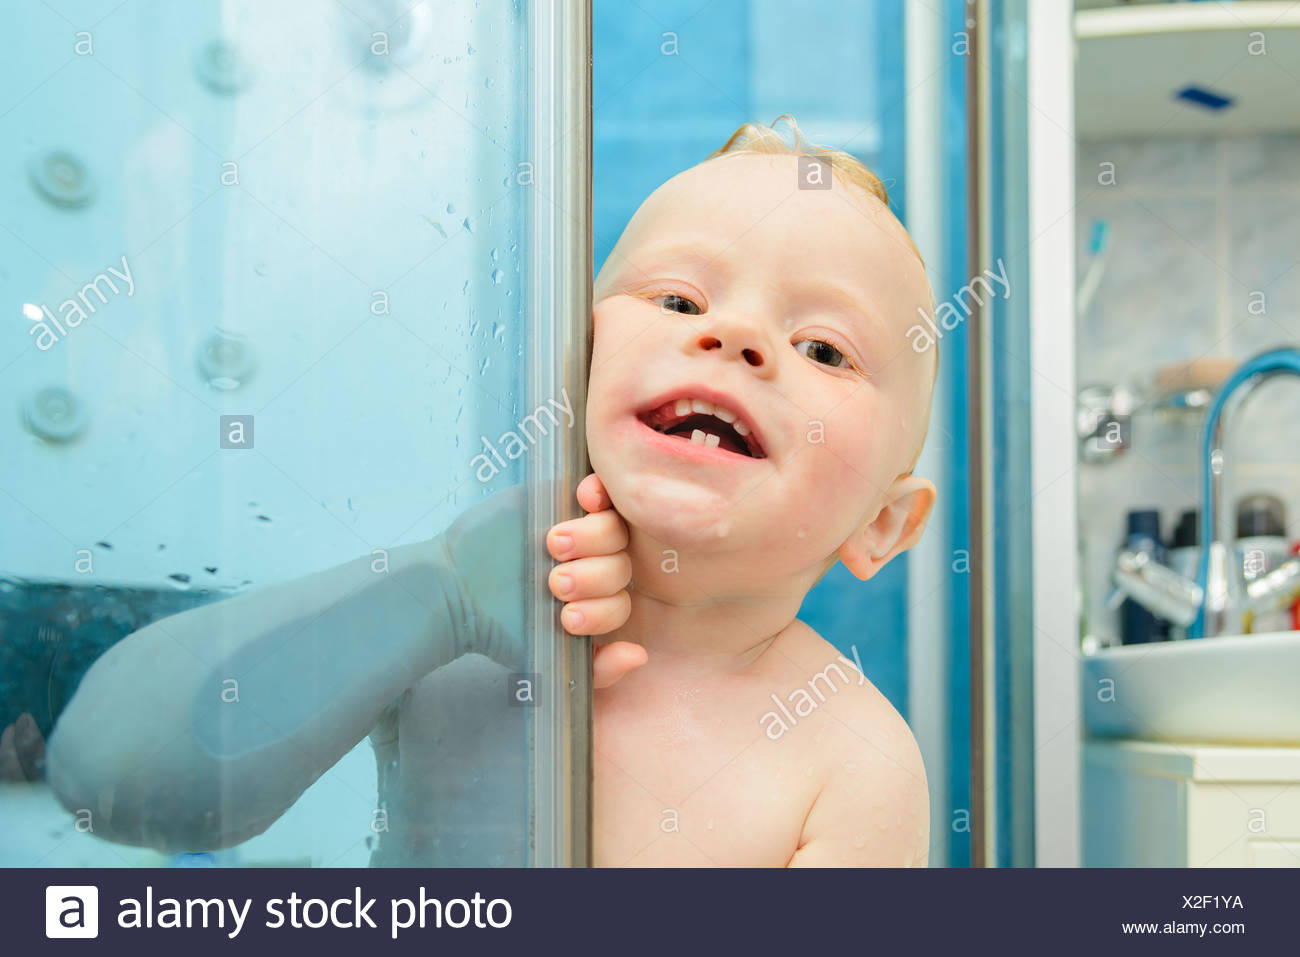 Children Taking Bath In Bathtub Stock Photos & Children Taking Bath ...